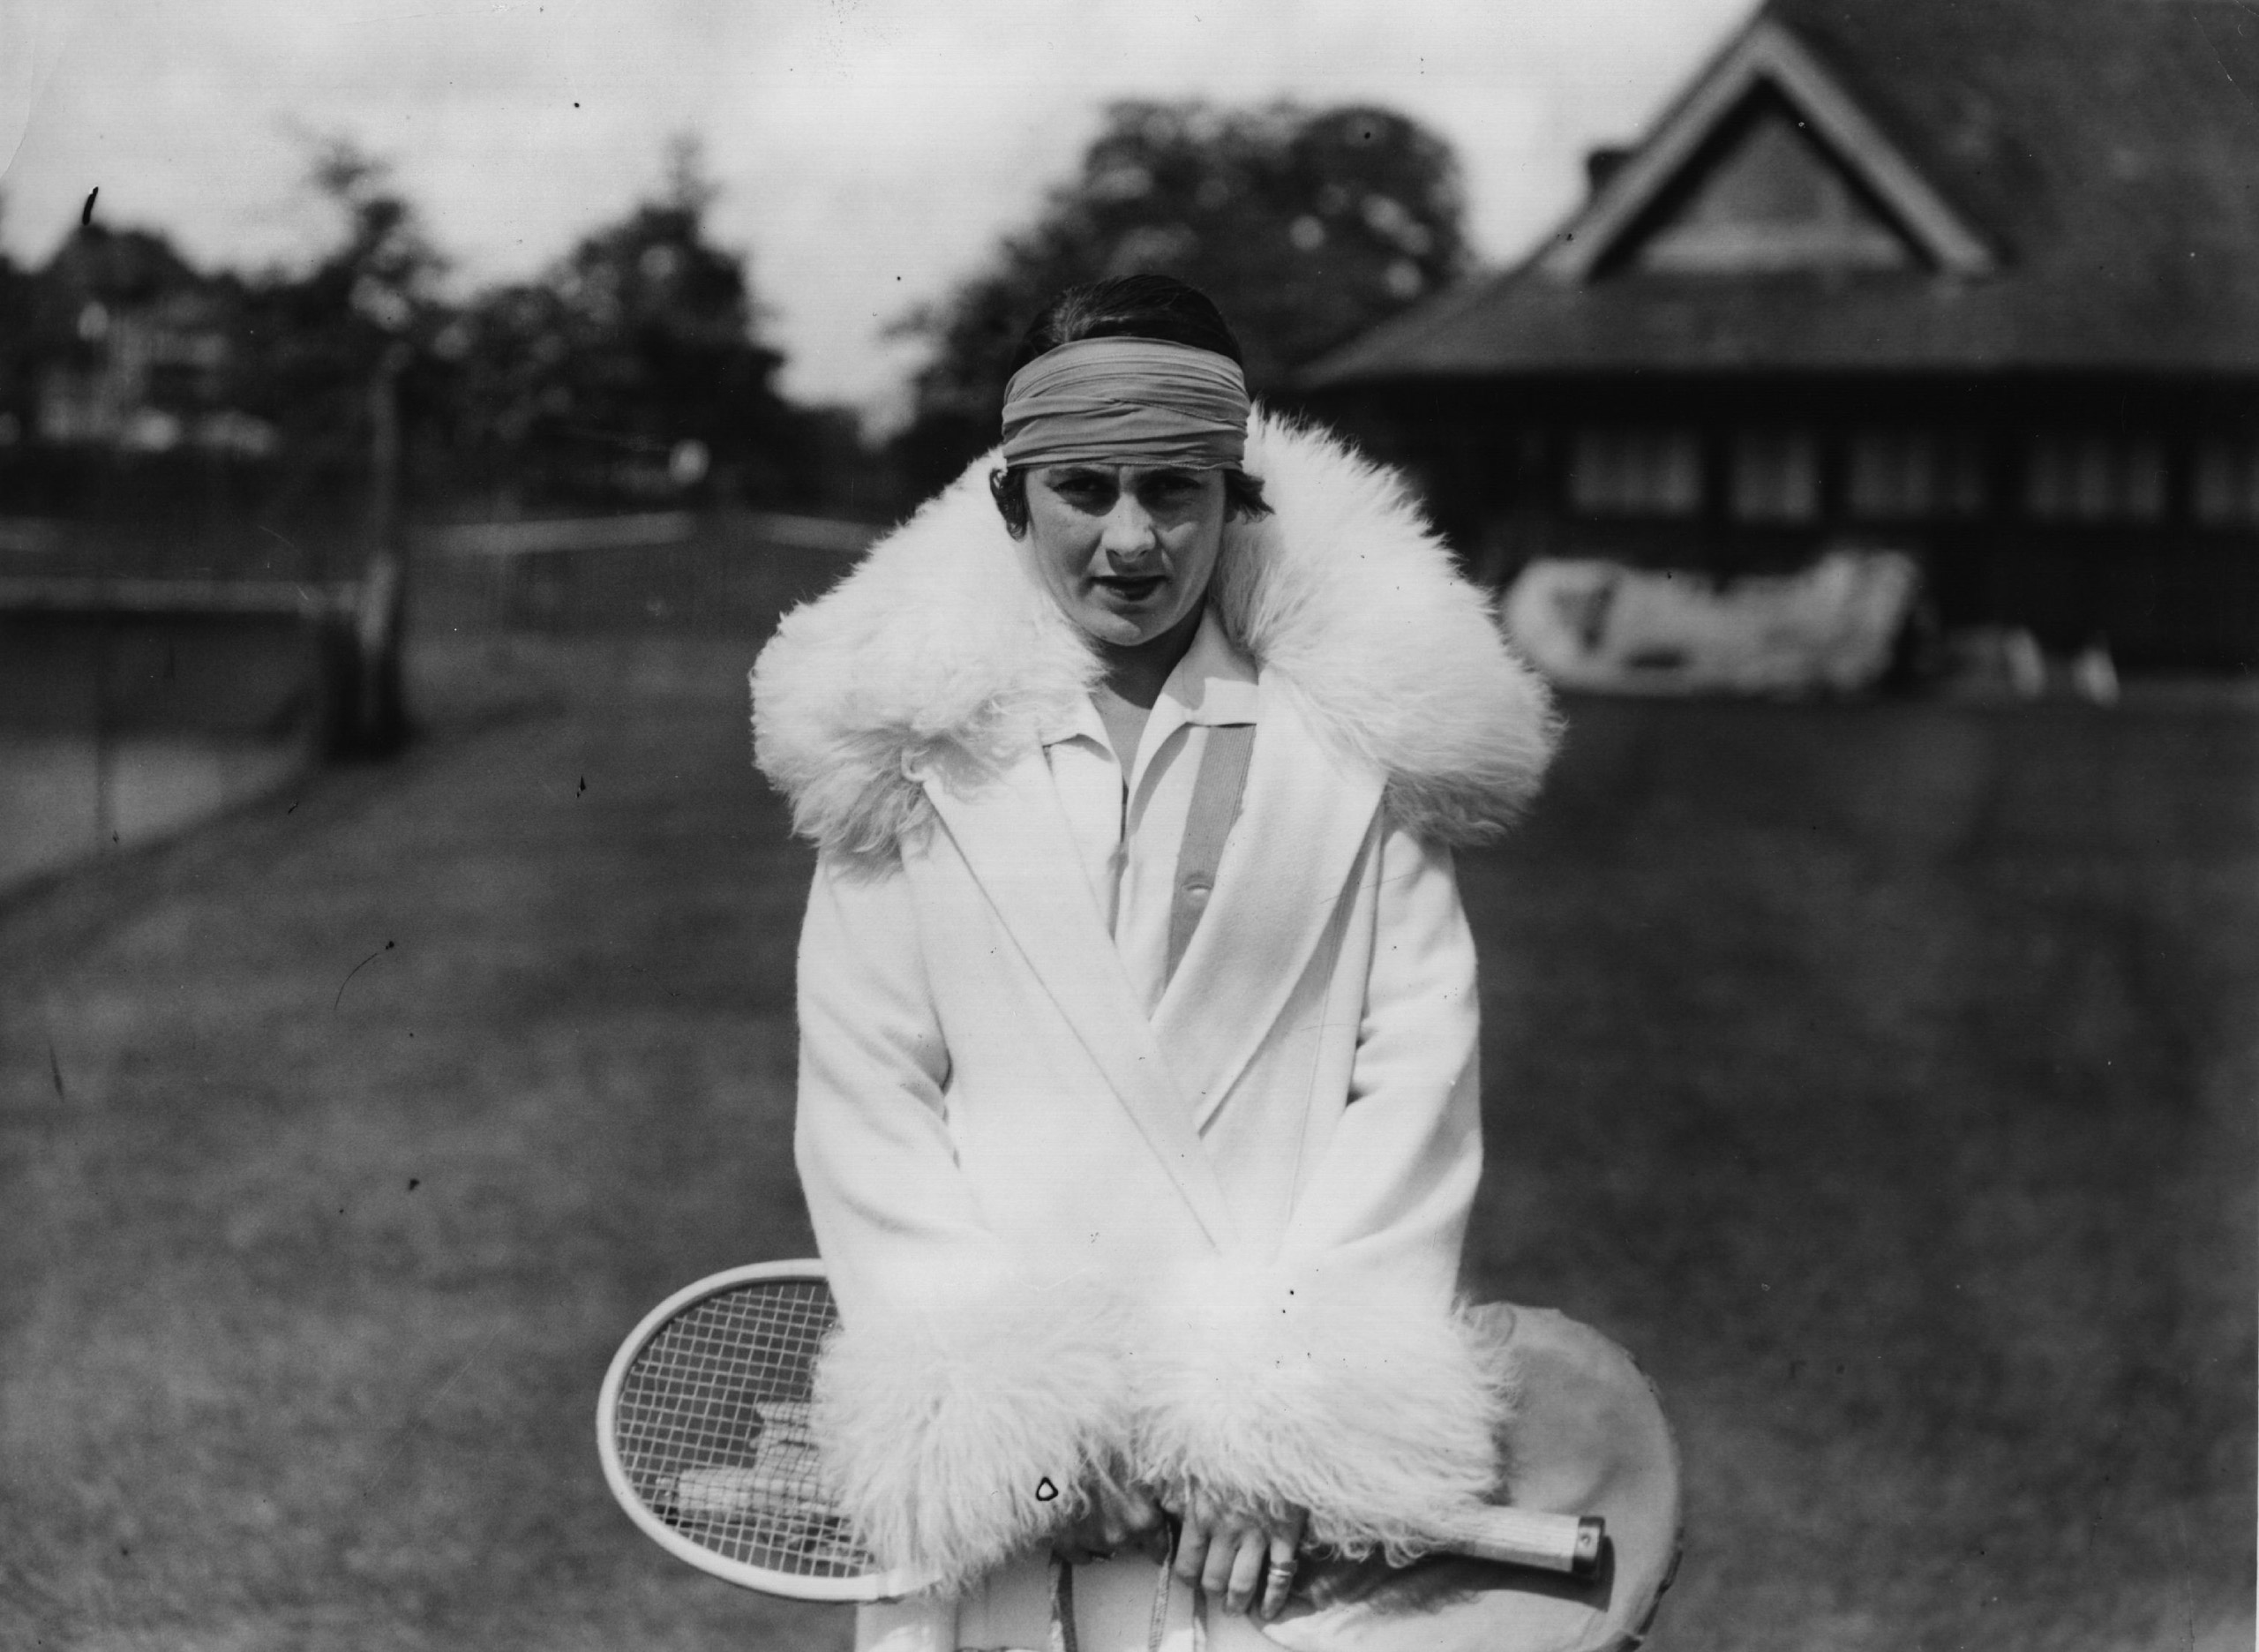 "Spanish tennis player Lili de Alvarez after she had beaten Molla Mallory in the lawn tennis ladies singles championships at Beckenham, England, on June 12, 1926. Alvarez made headlines in 1931 for wearing what TIME <a href=""http://time.com/vault/issue/1931-07-06/page/44/"">described</a> that year as ""a split skirt which resembled a pair of abbreviated pajamas"" (in other words, shorts) at Wimbledon."